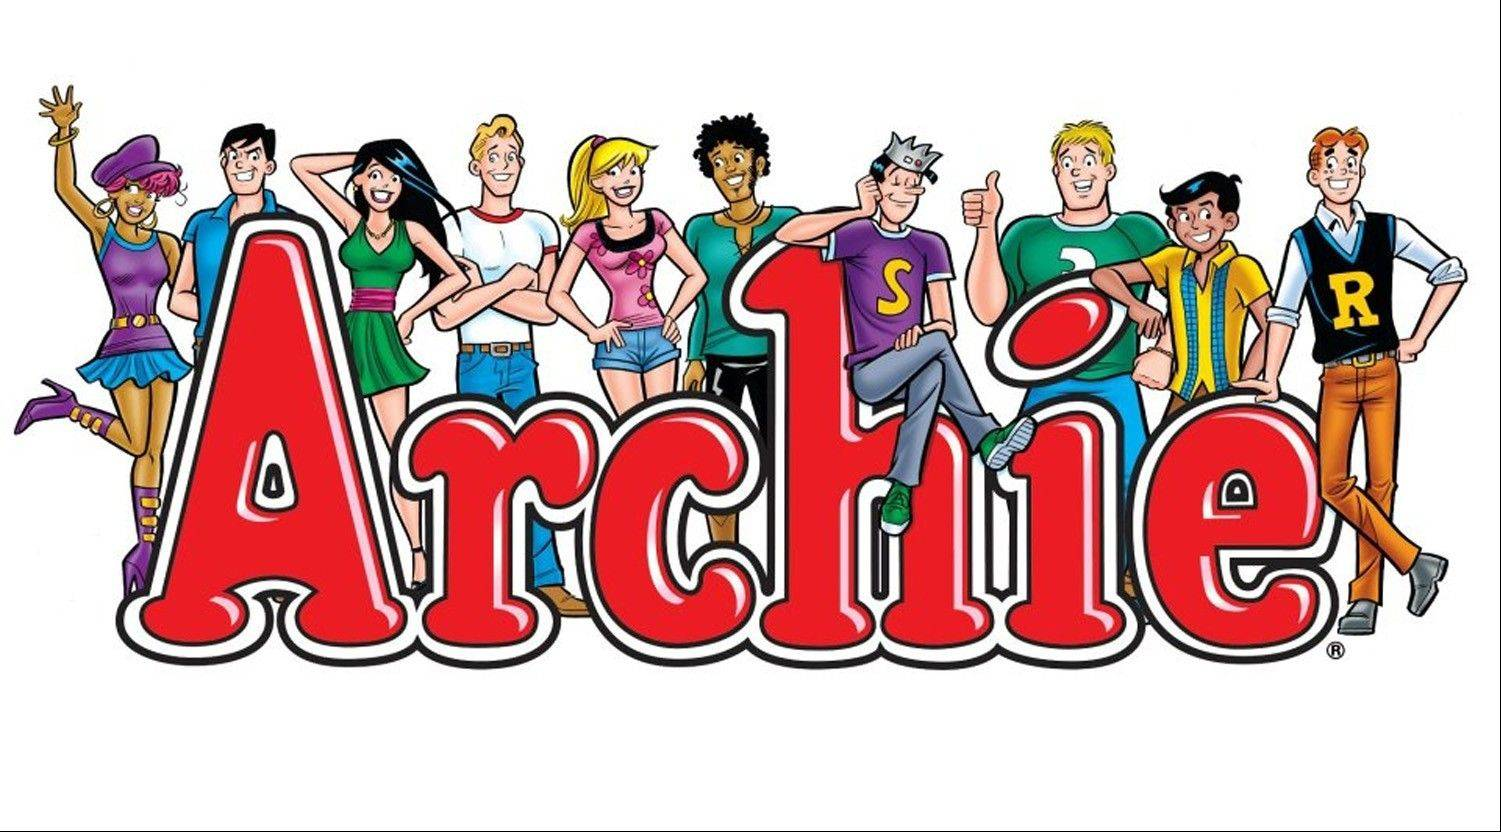 Archie Comics has announced that Warner Bros. will produce a live-action film based on the comic�s characters, including Archie, Betty, Veronica and Jughead.